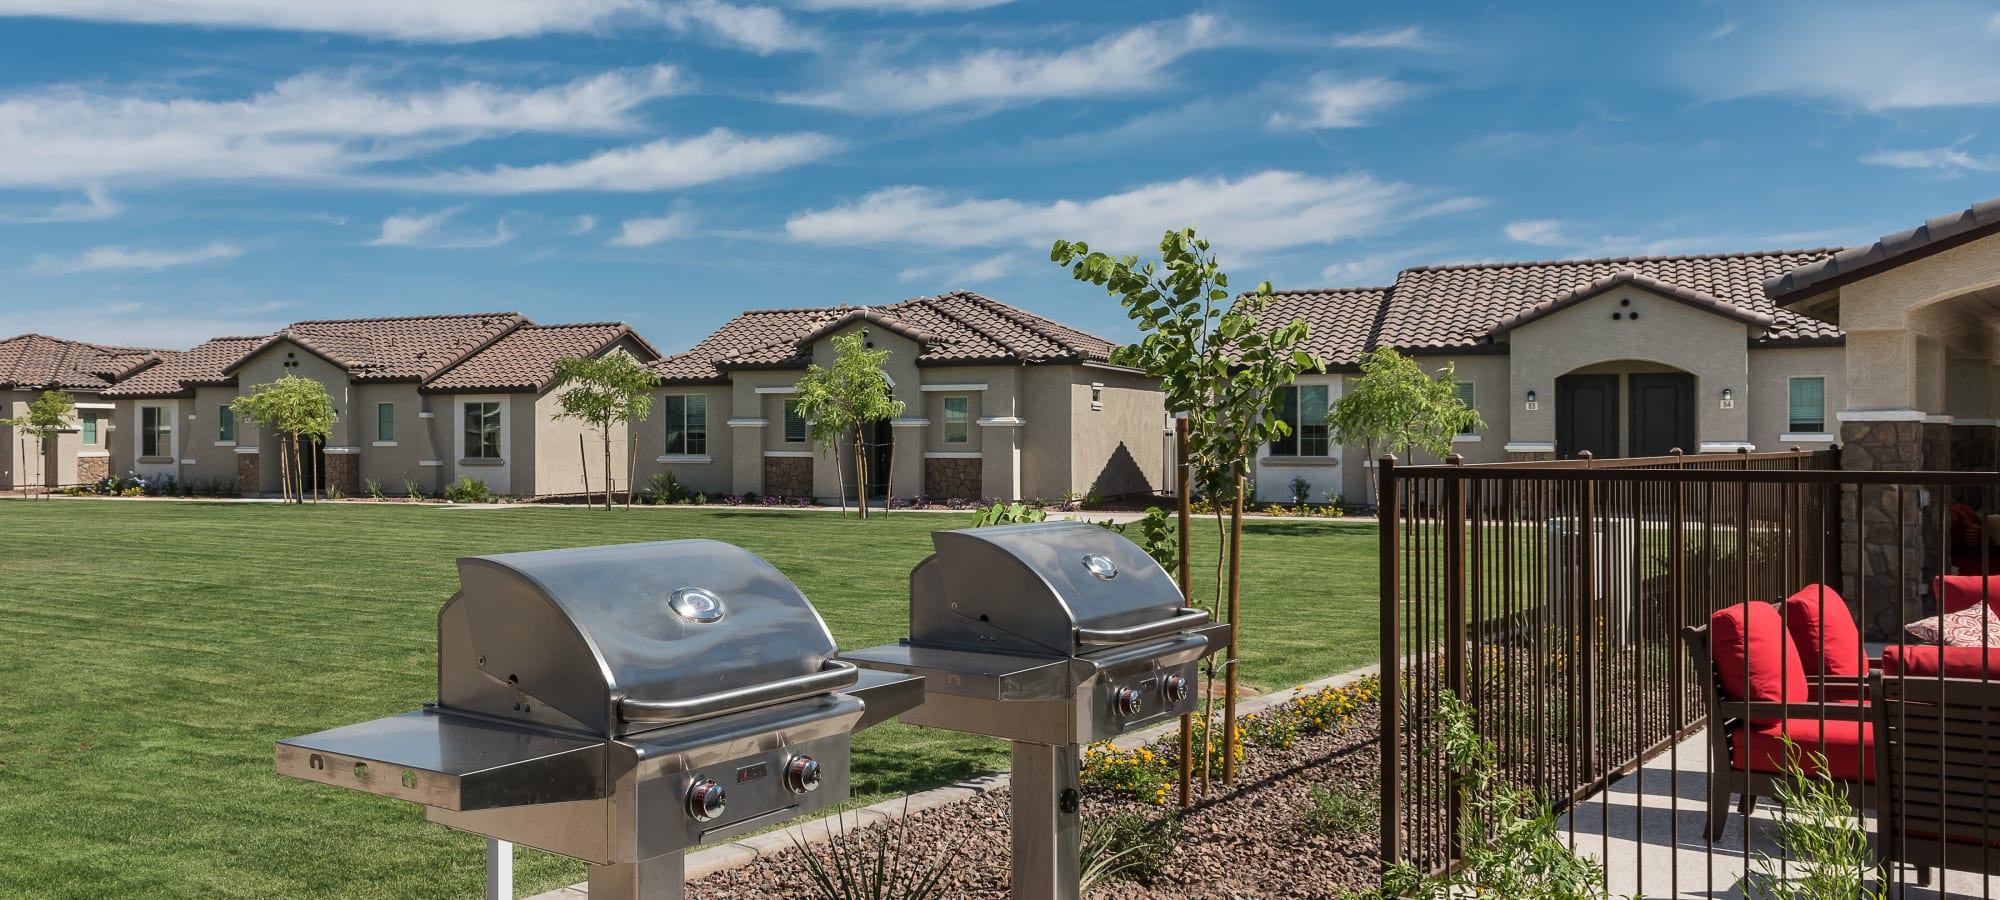 Outdoor grilling area at TerraLane at Canyon Trails in Goodyear, Arizona